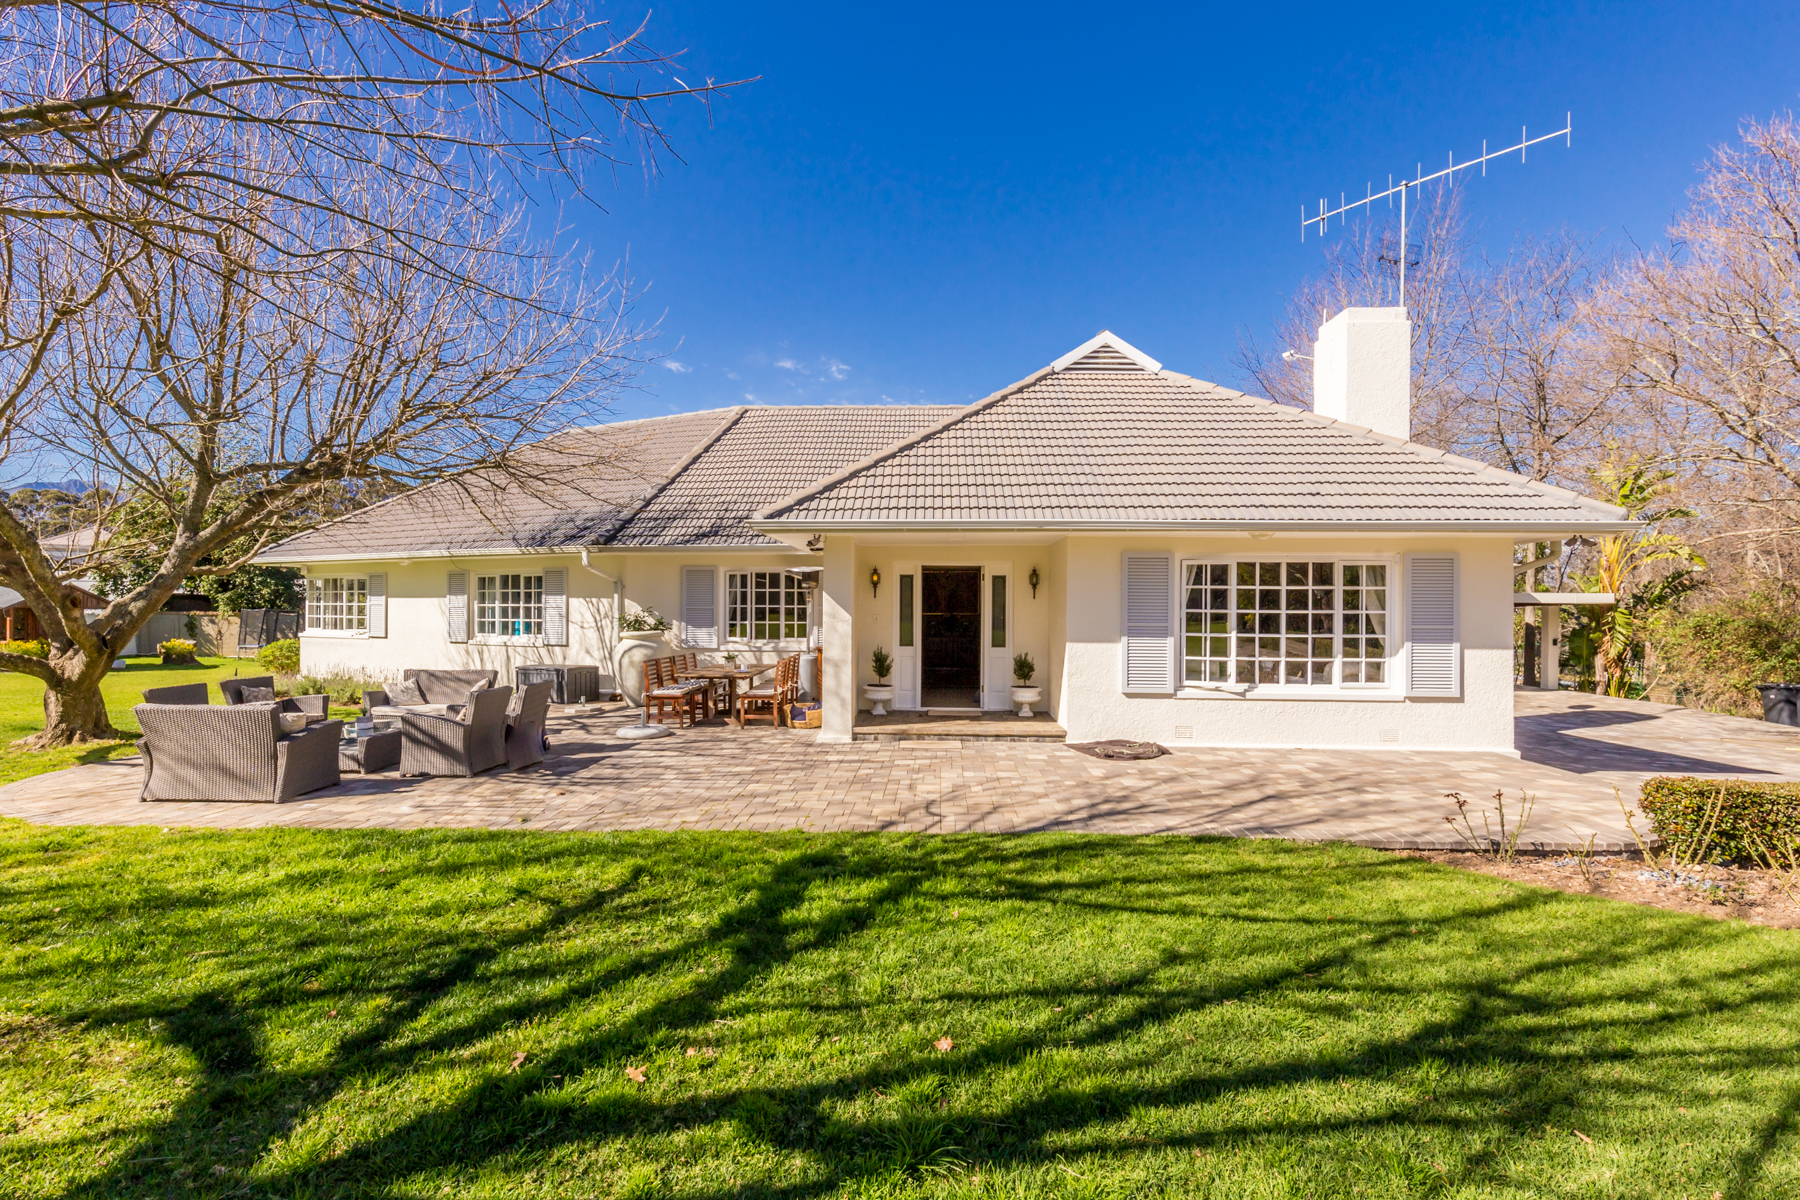 Single Family Home for Sale at Somerset West Somerset West, Western Cape, 7130 South Africa